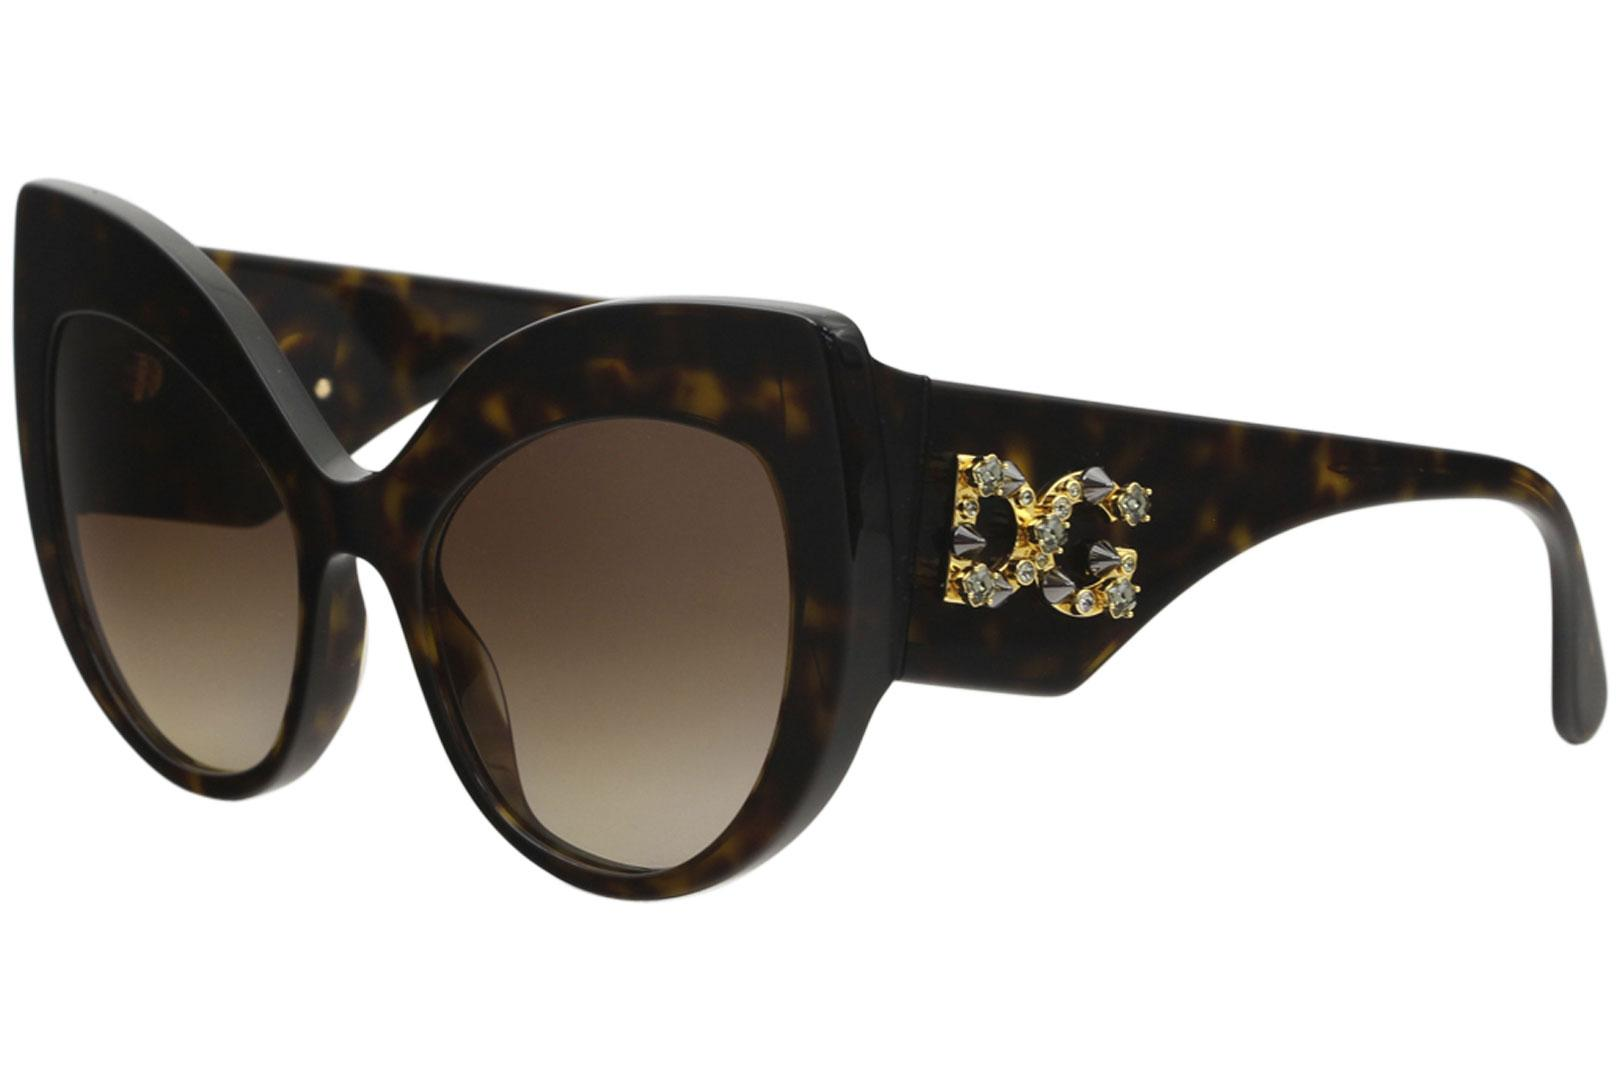 817ec79f72b3 Dolce   Gabbana Women s D G DG4321 DG 4321 Fashion Cat Eye Sunglasses by  Dolce   Gabbana